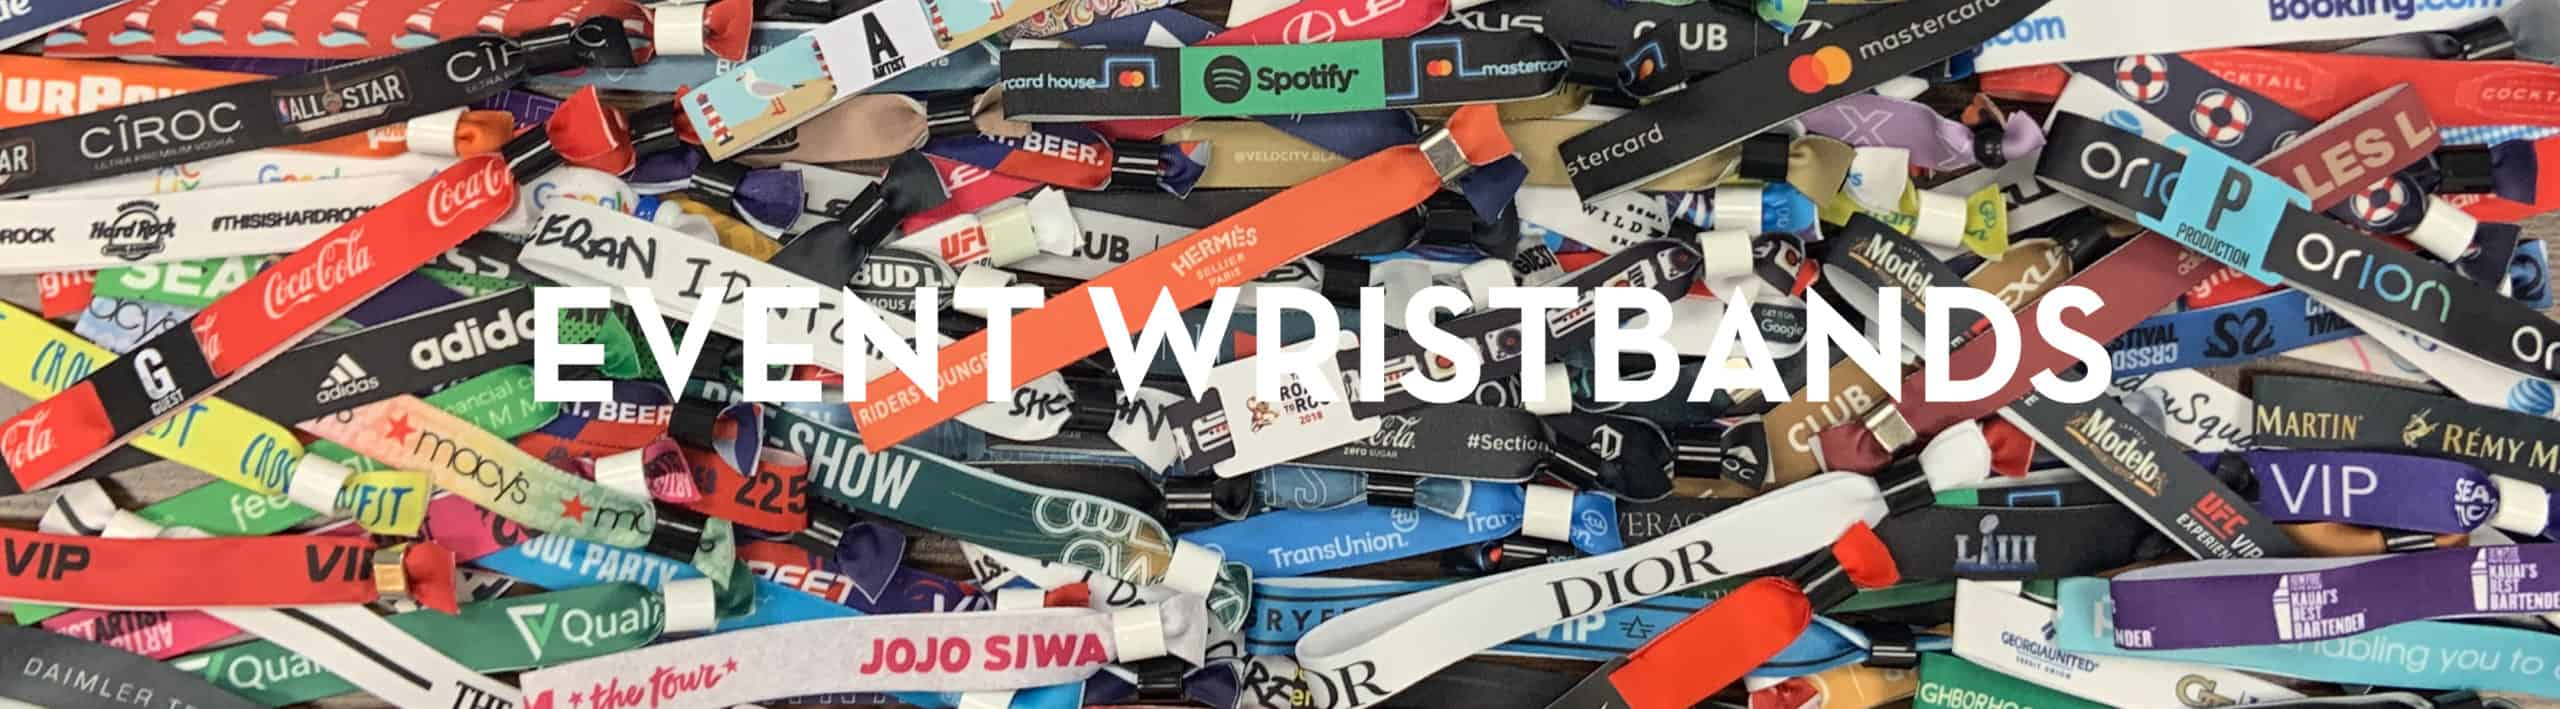 Wristbands_Footer